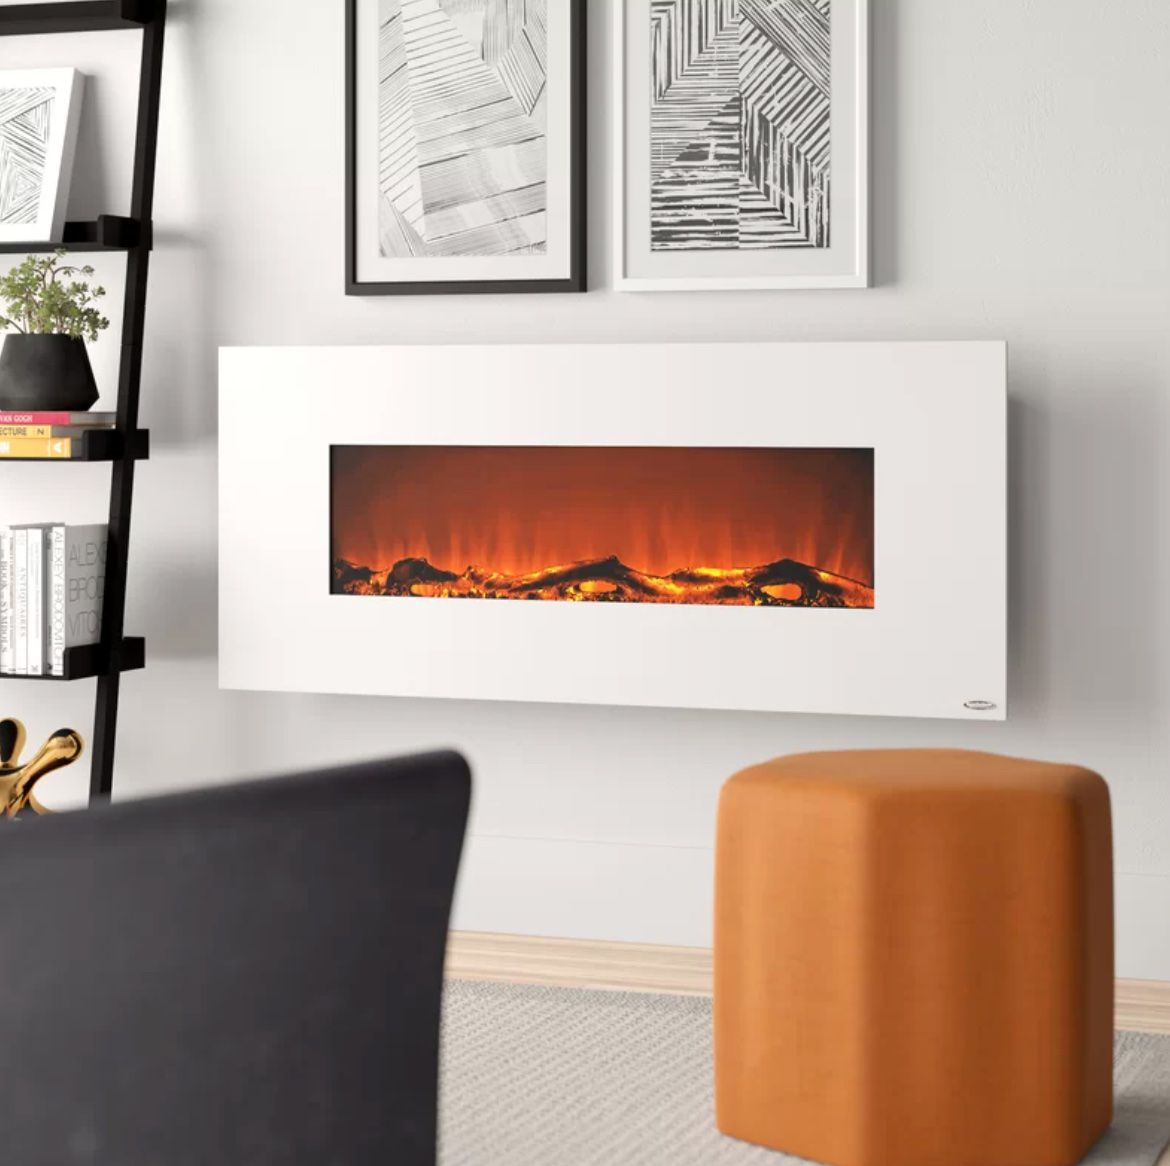 Lauderhill 50.4'' W Surface Wall Mounted Electric Fireplace